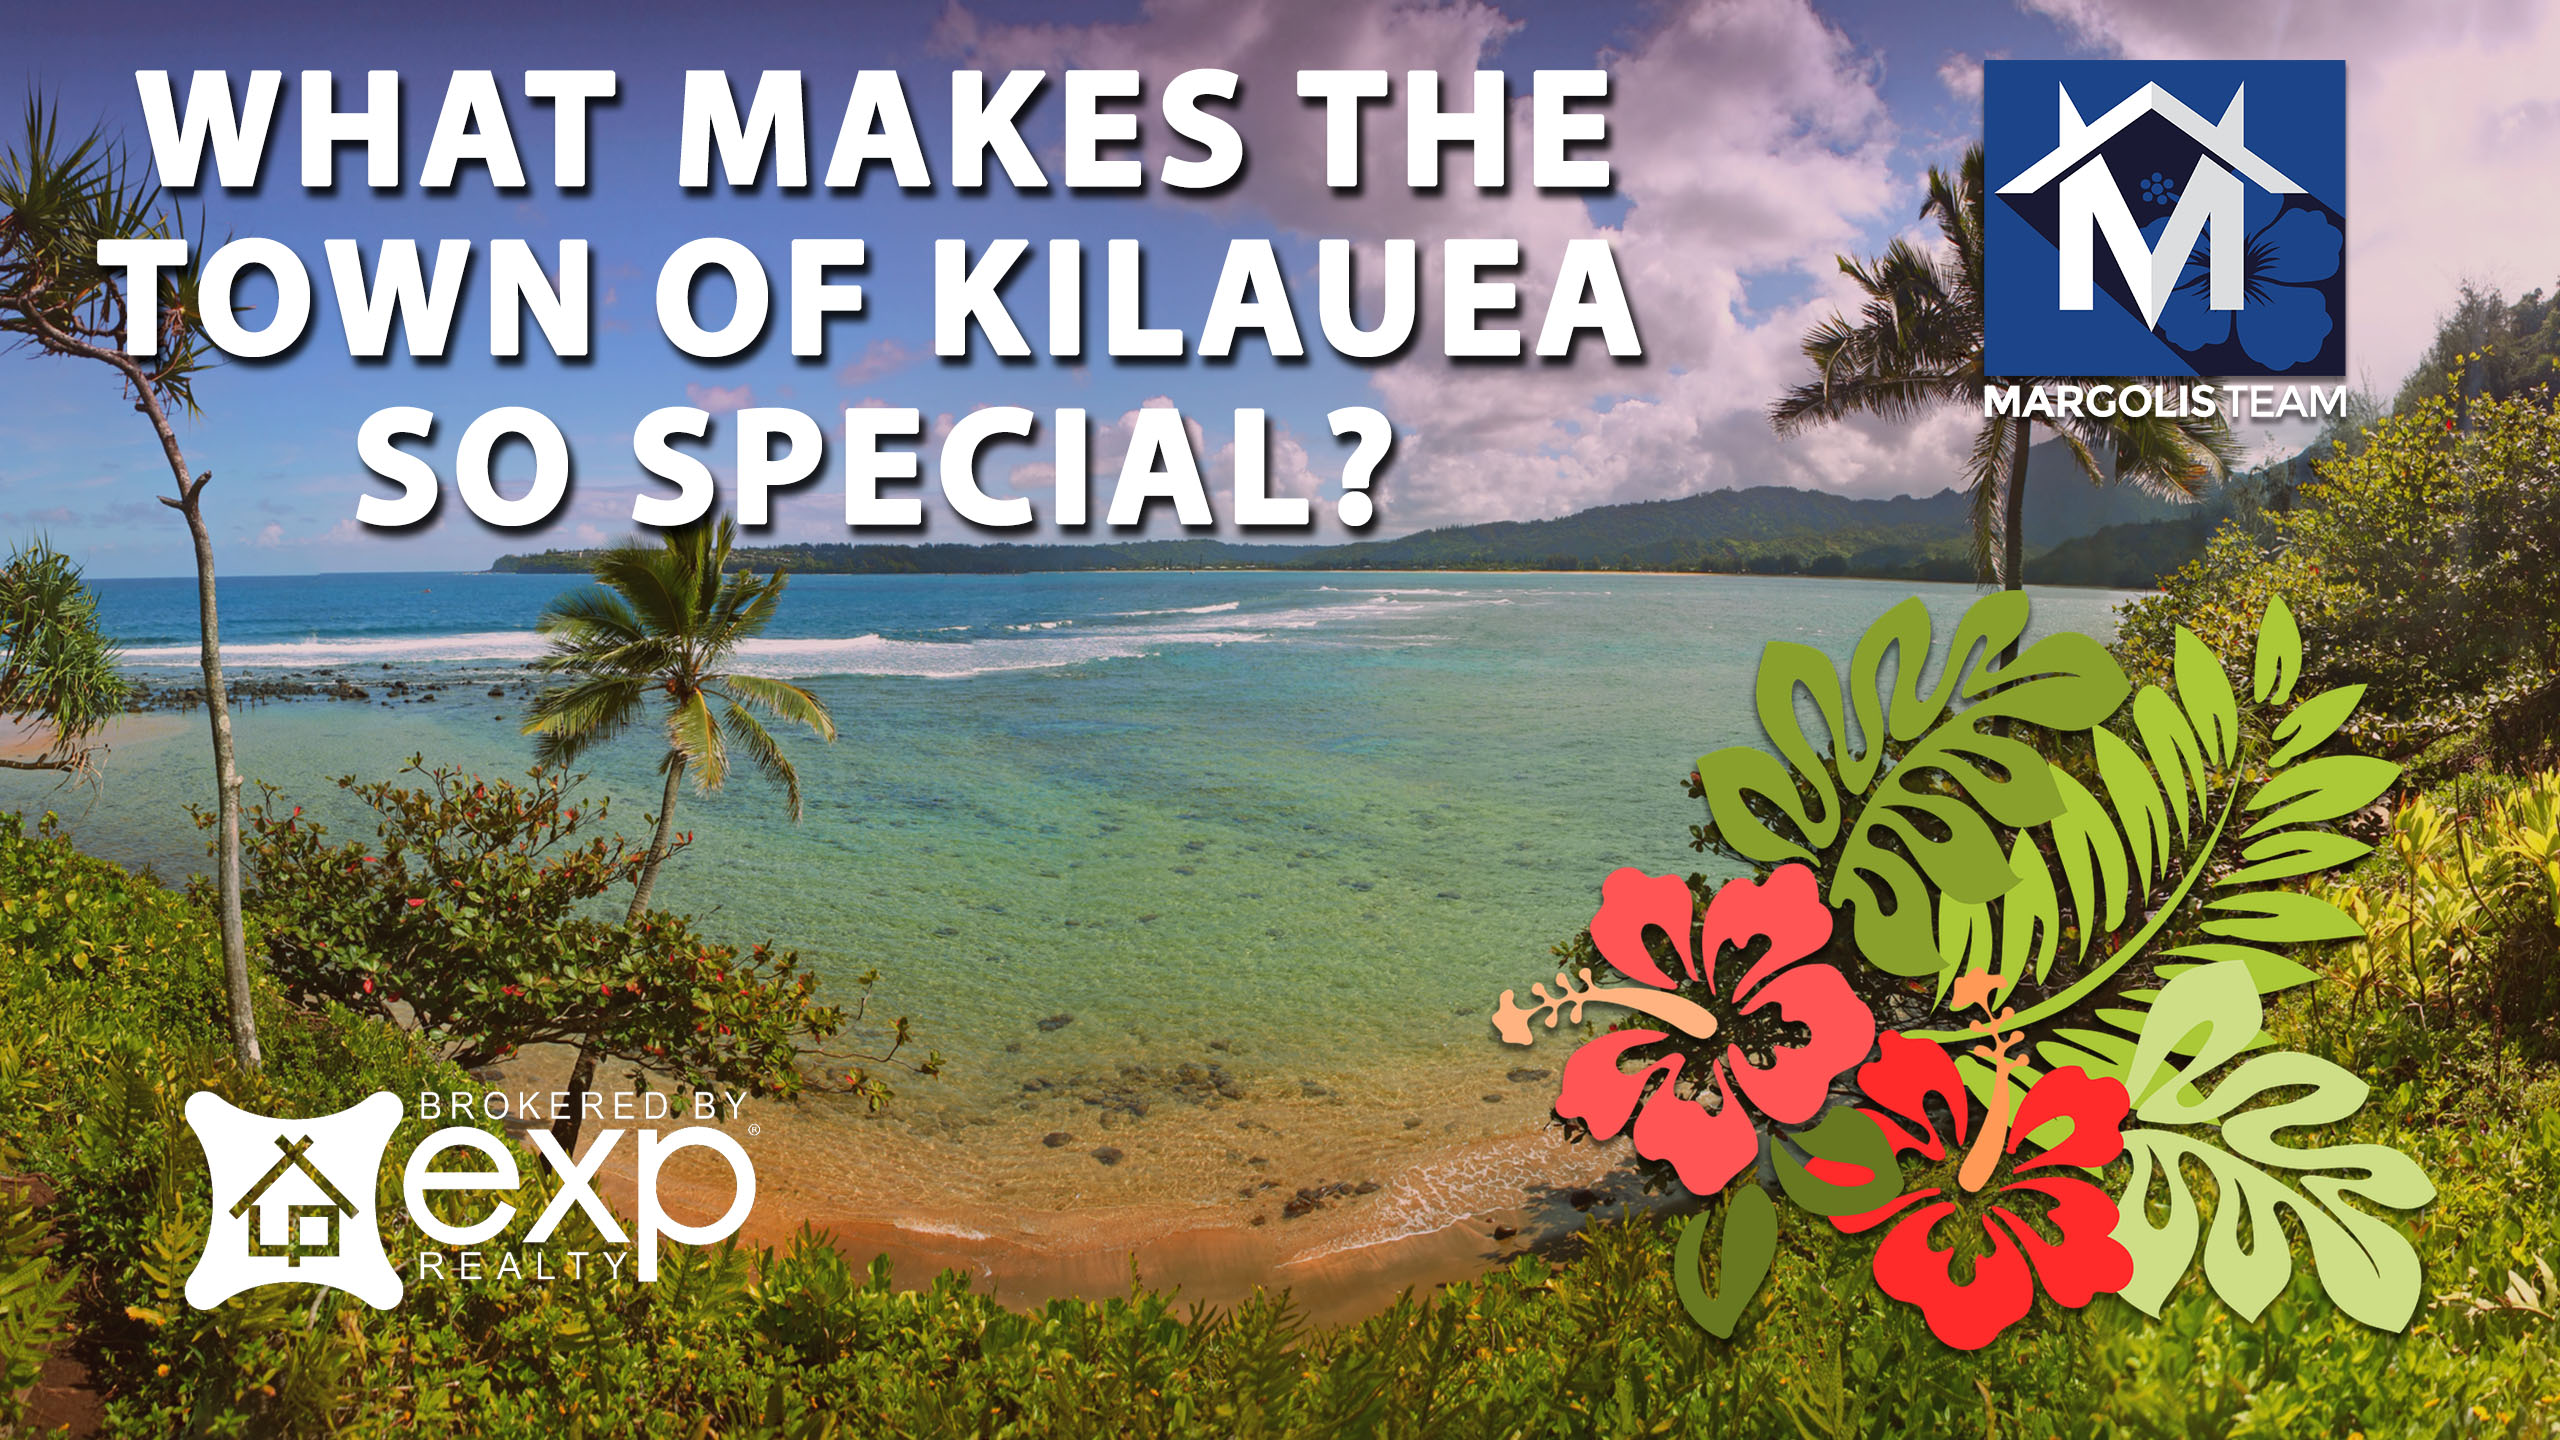 What Makes the Town of Kilauea So Special?